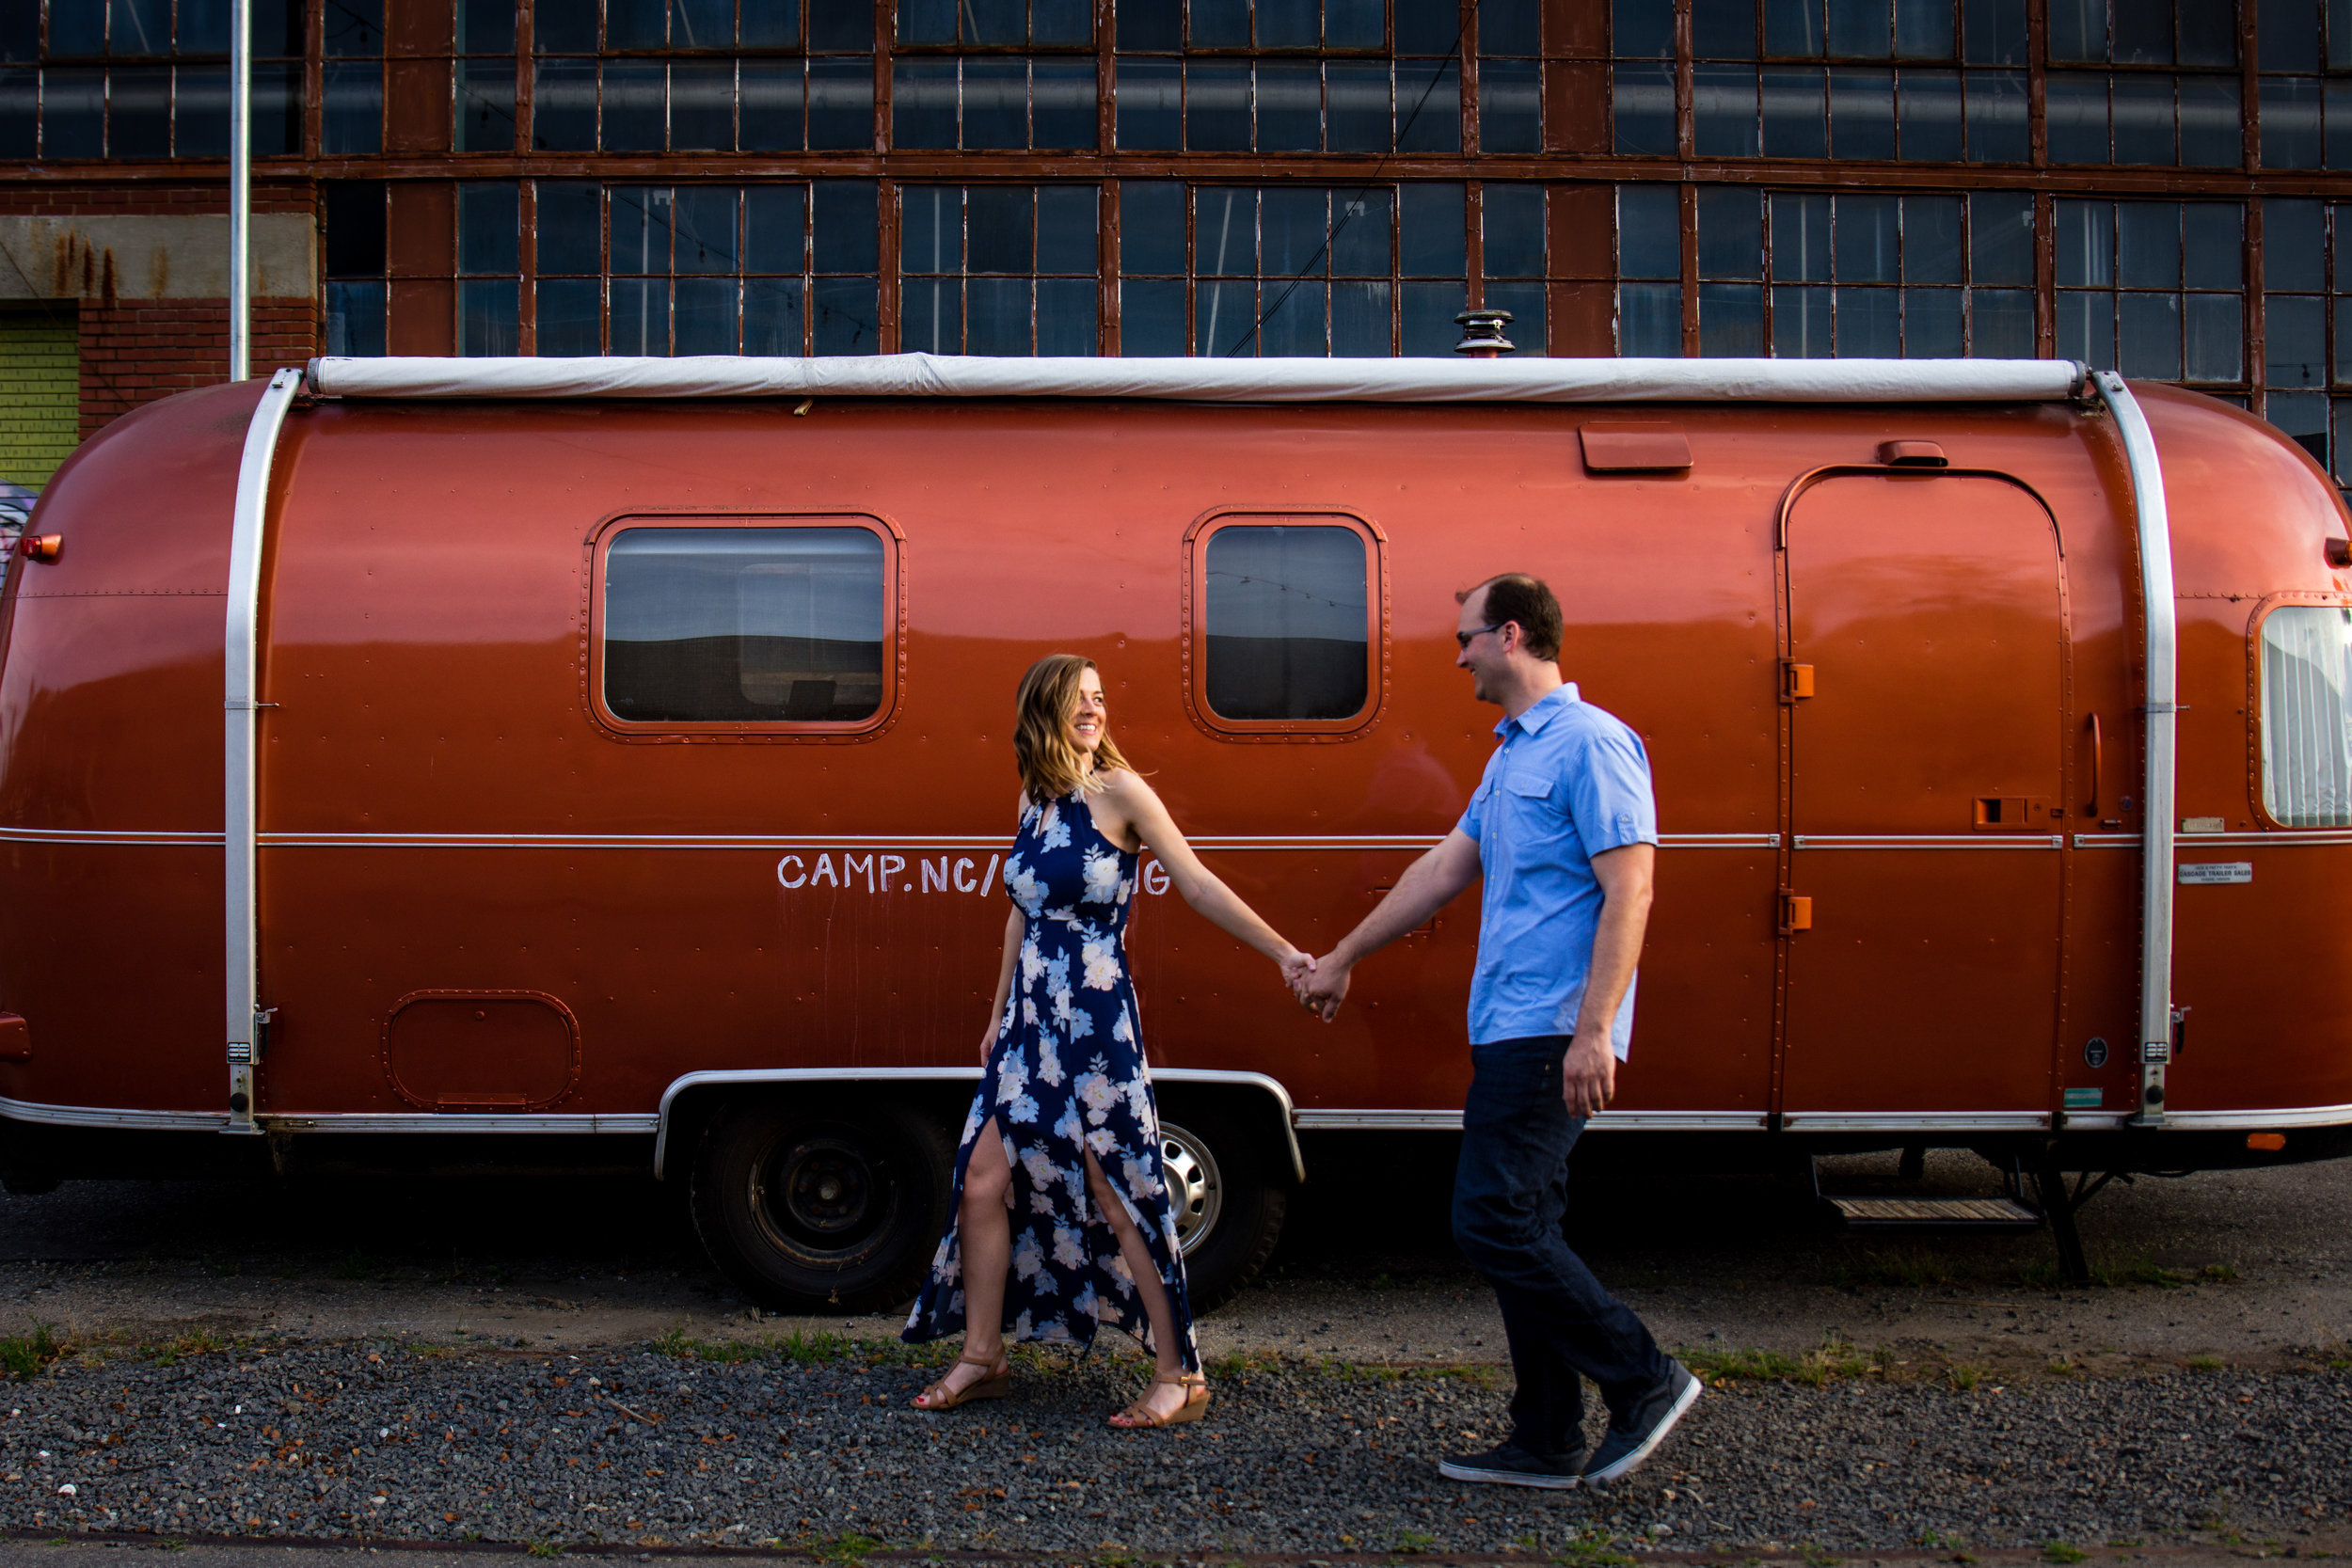 Camp North End Engagement Session with Airstream from Charlotte Wedding Photographer